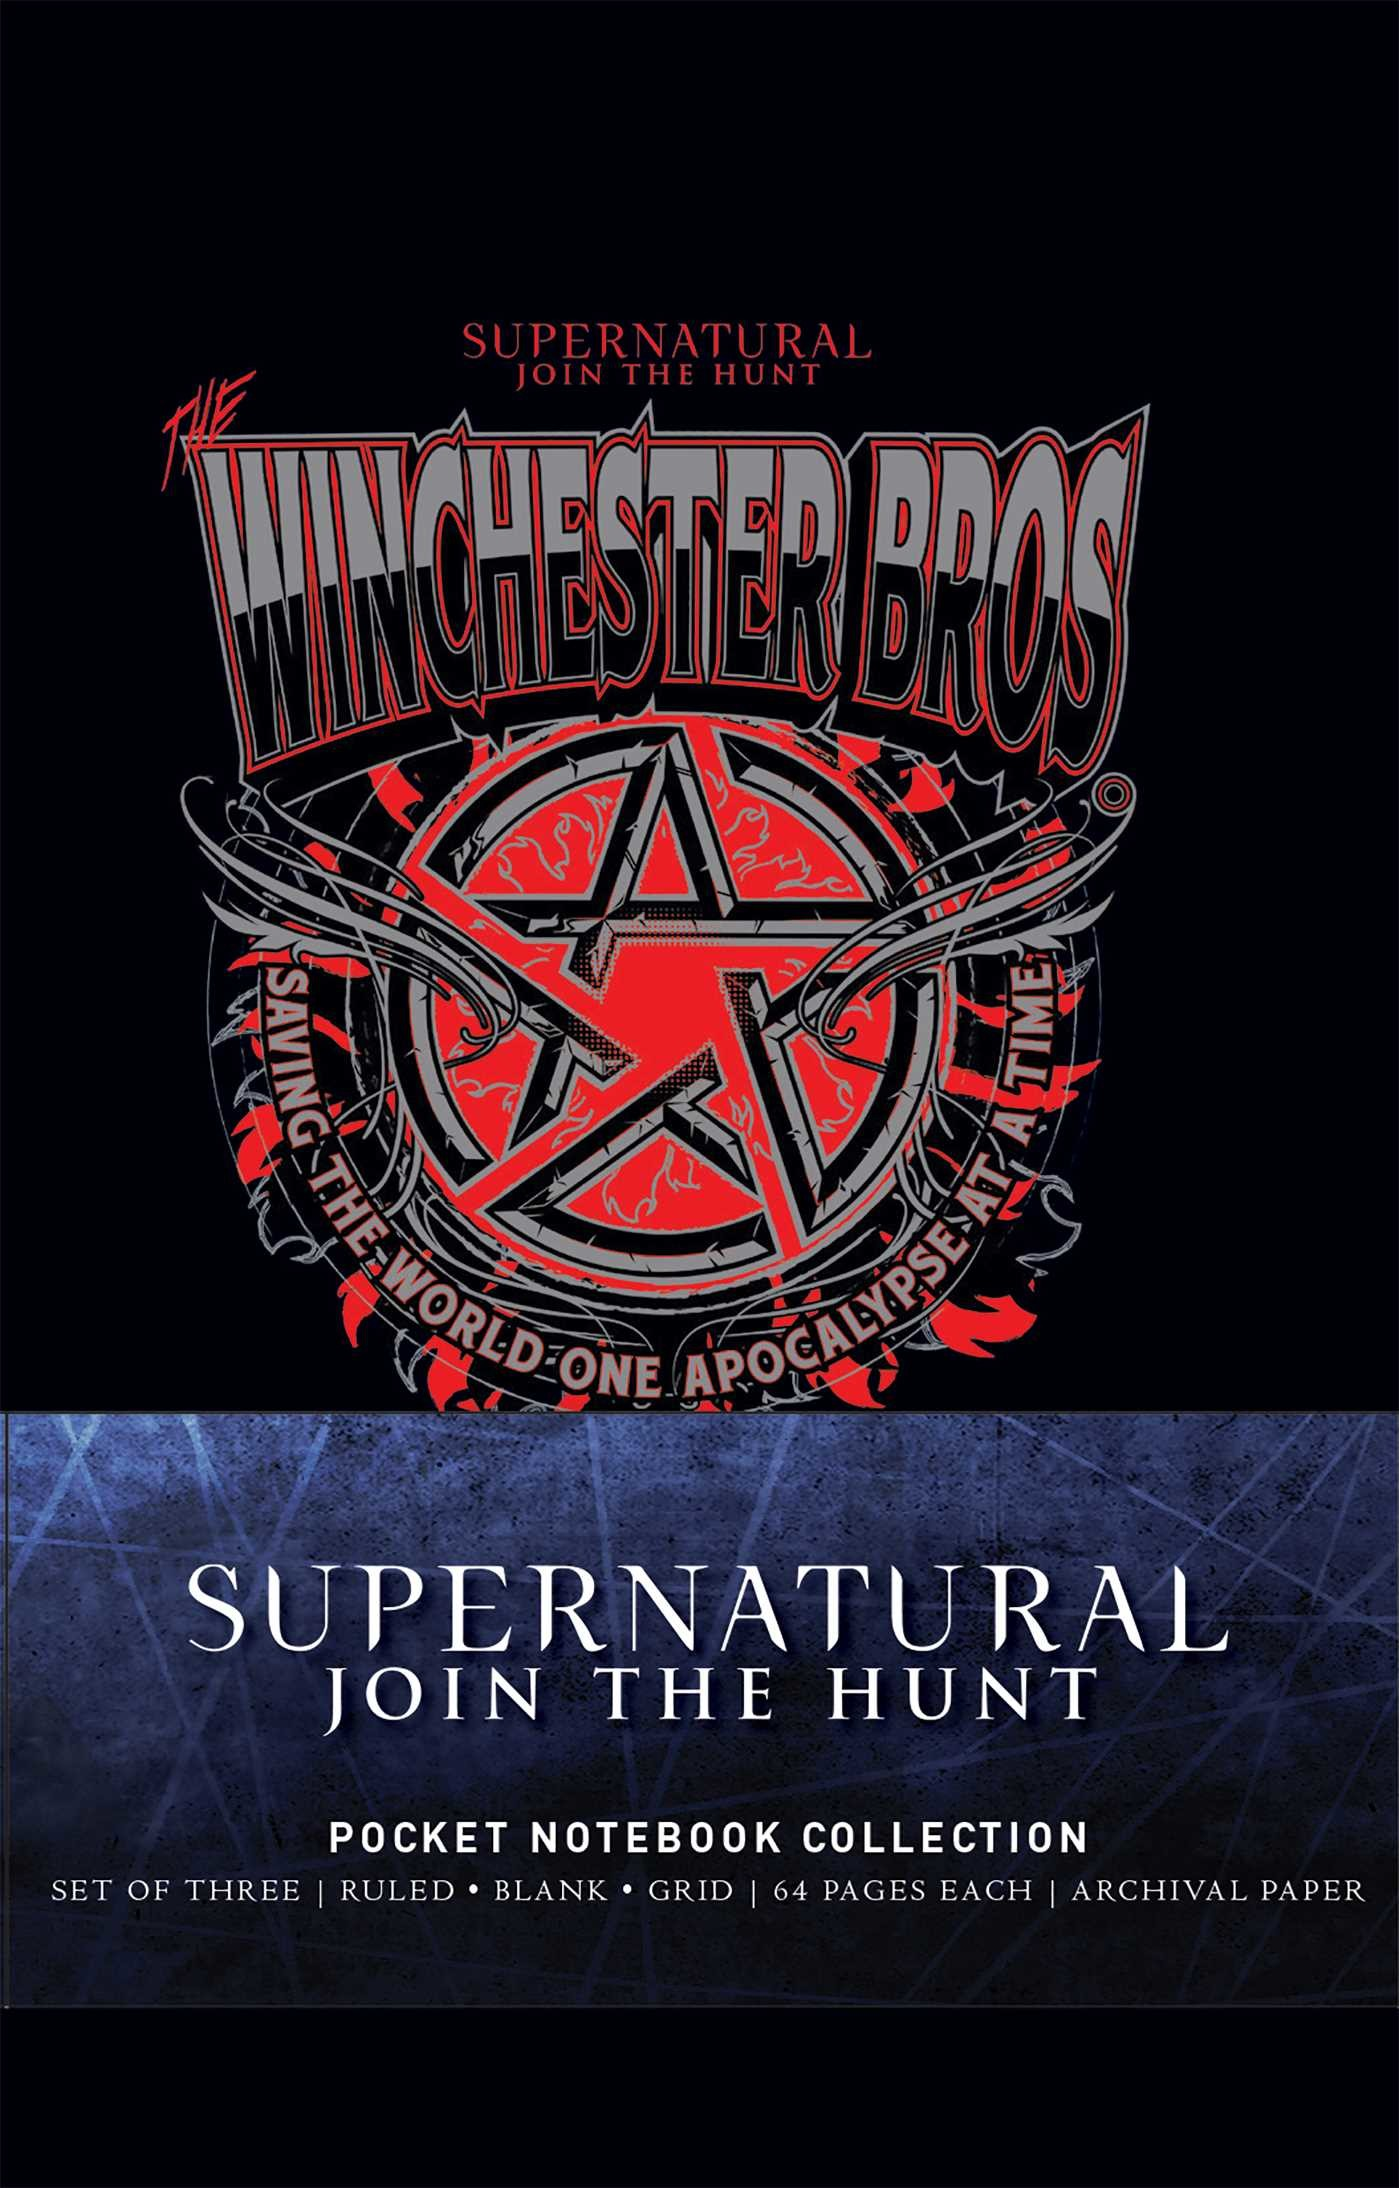 Supernatural pocket notebook collection set of 3 9781683835264.in02